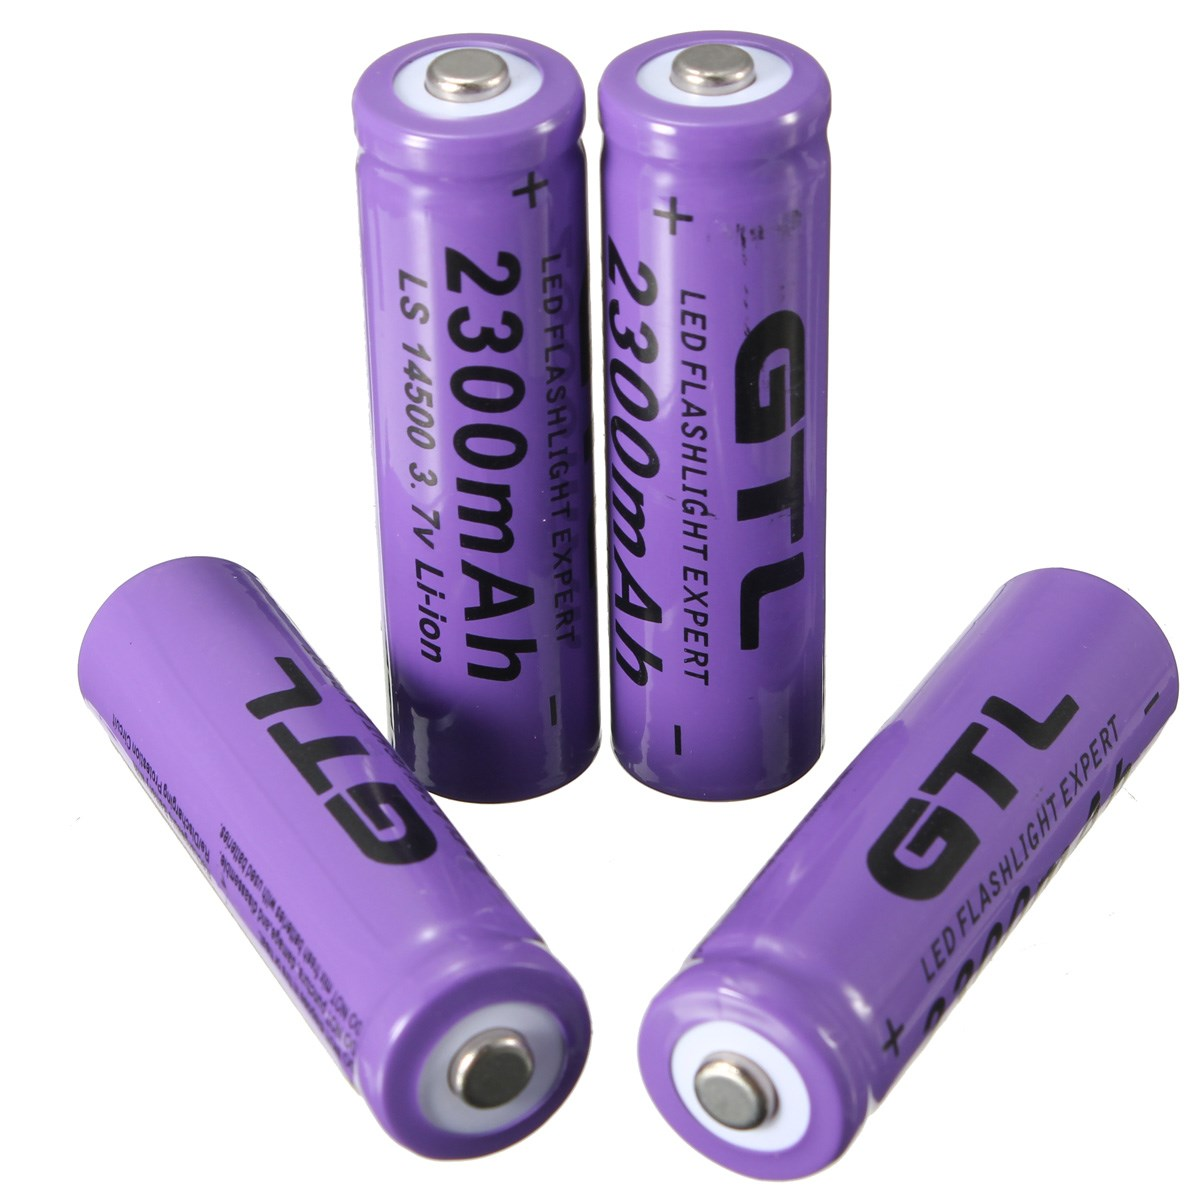 4pcs-lot-universal-safety-37v-2300mah-14500-aa-li-ion-rechargeable-battery-for-flashlight-torch-power-bank-powerbank-case-diy